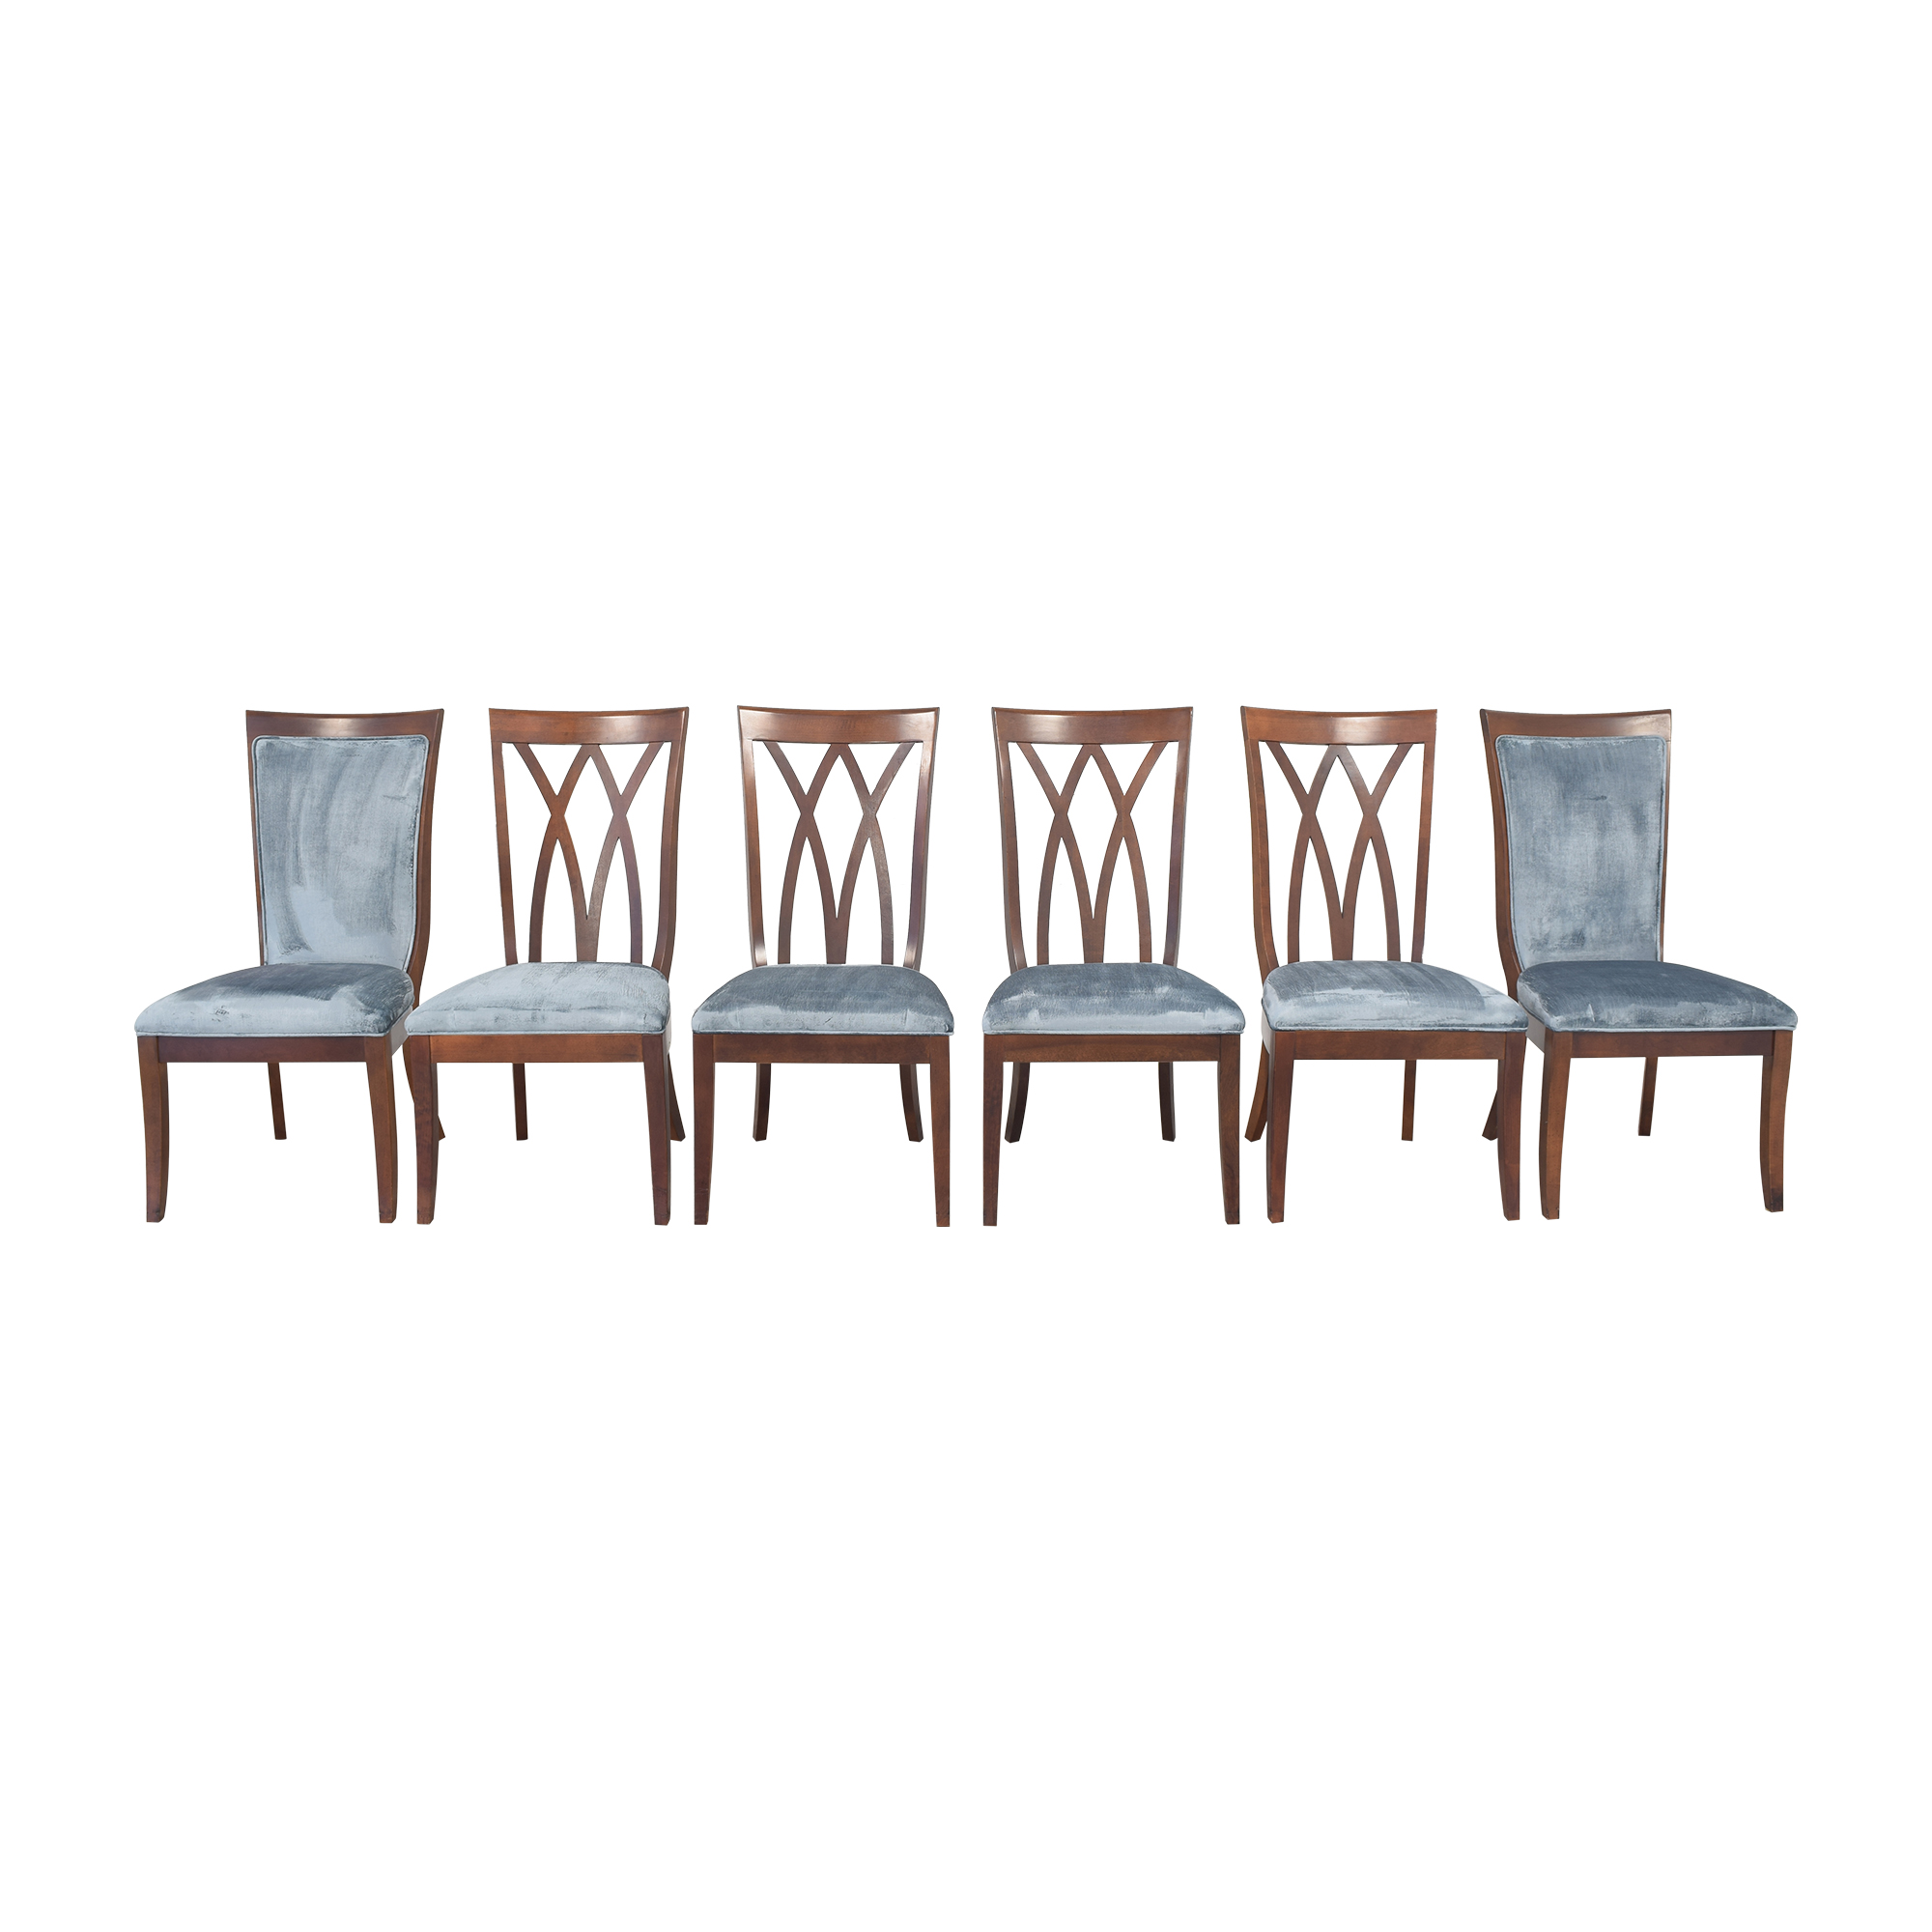 Stanley Furniture Stanley Dining Chairs price